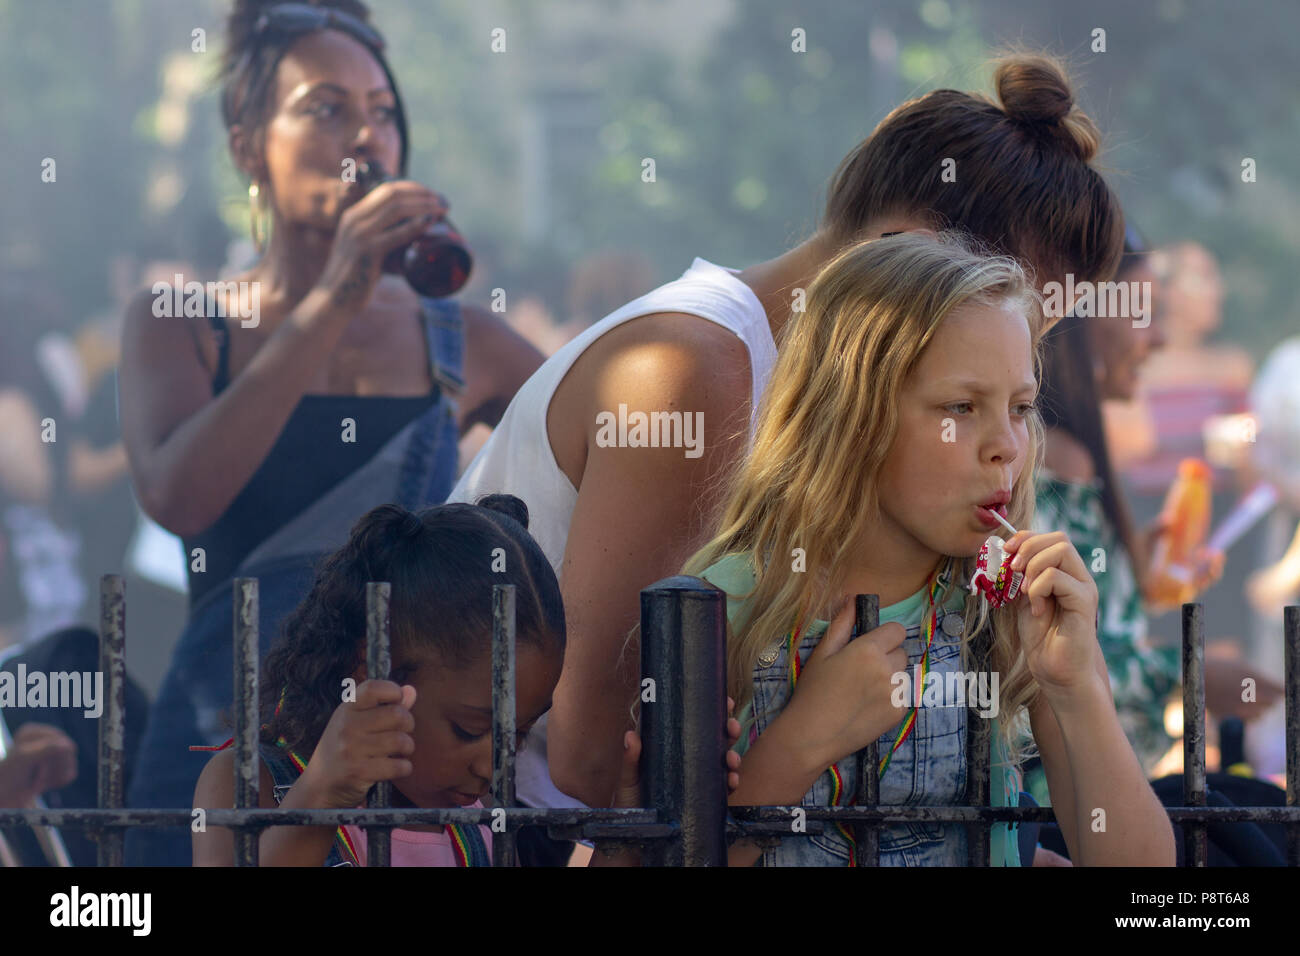 A woman and a girl indulging in quite different vices at St Paul's Carnival, Bristol - Stock Image